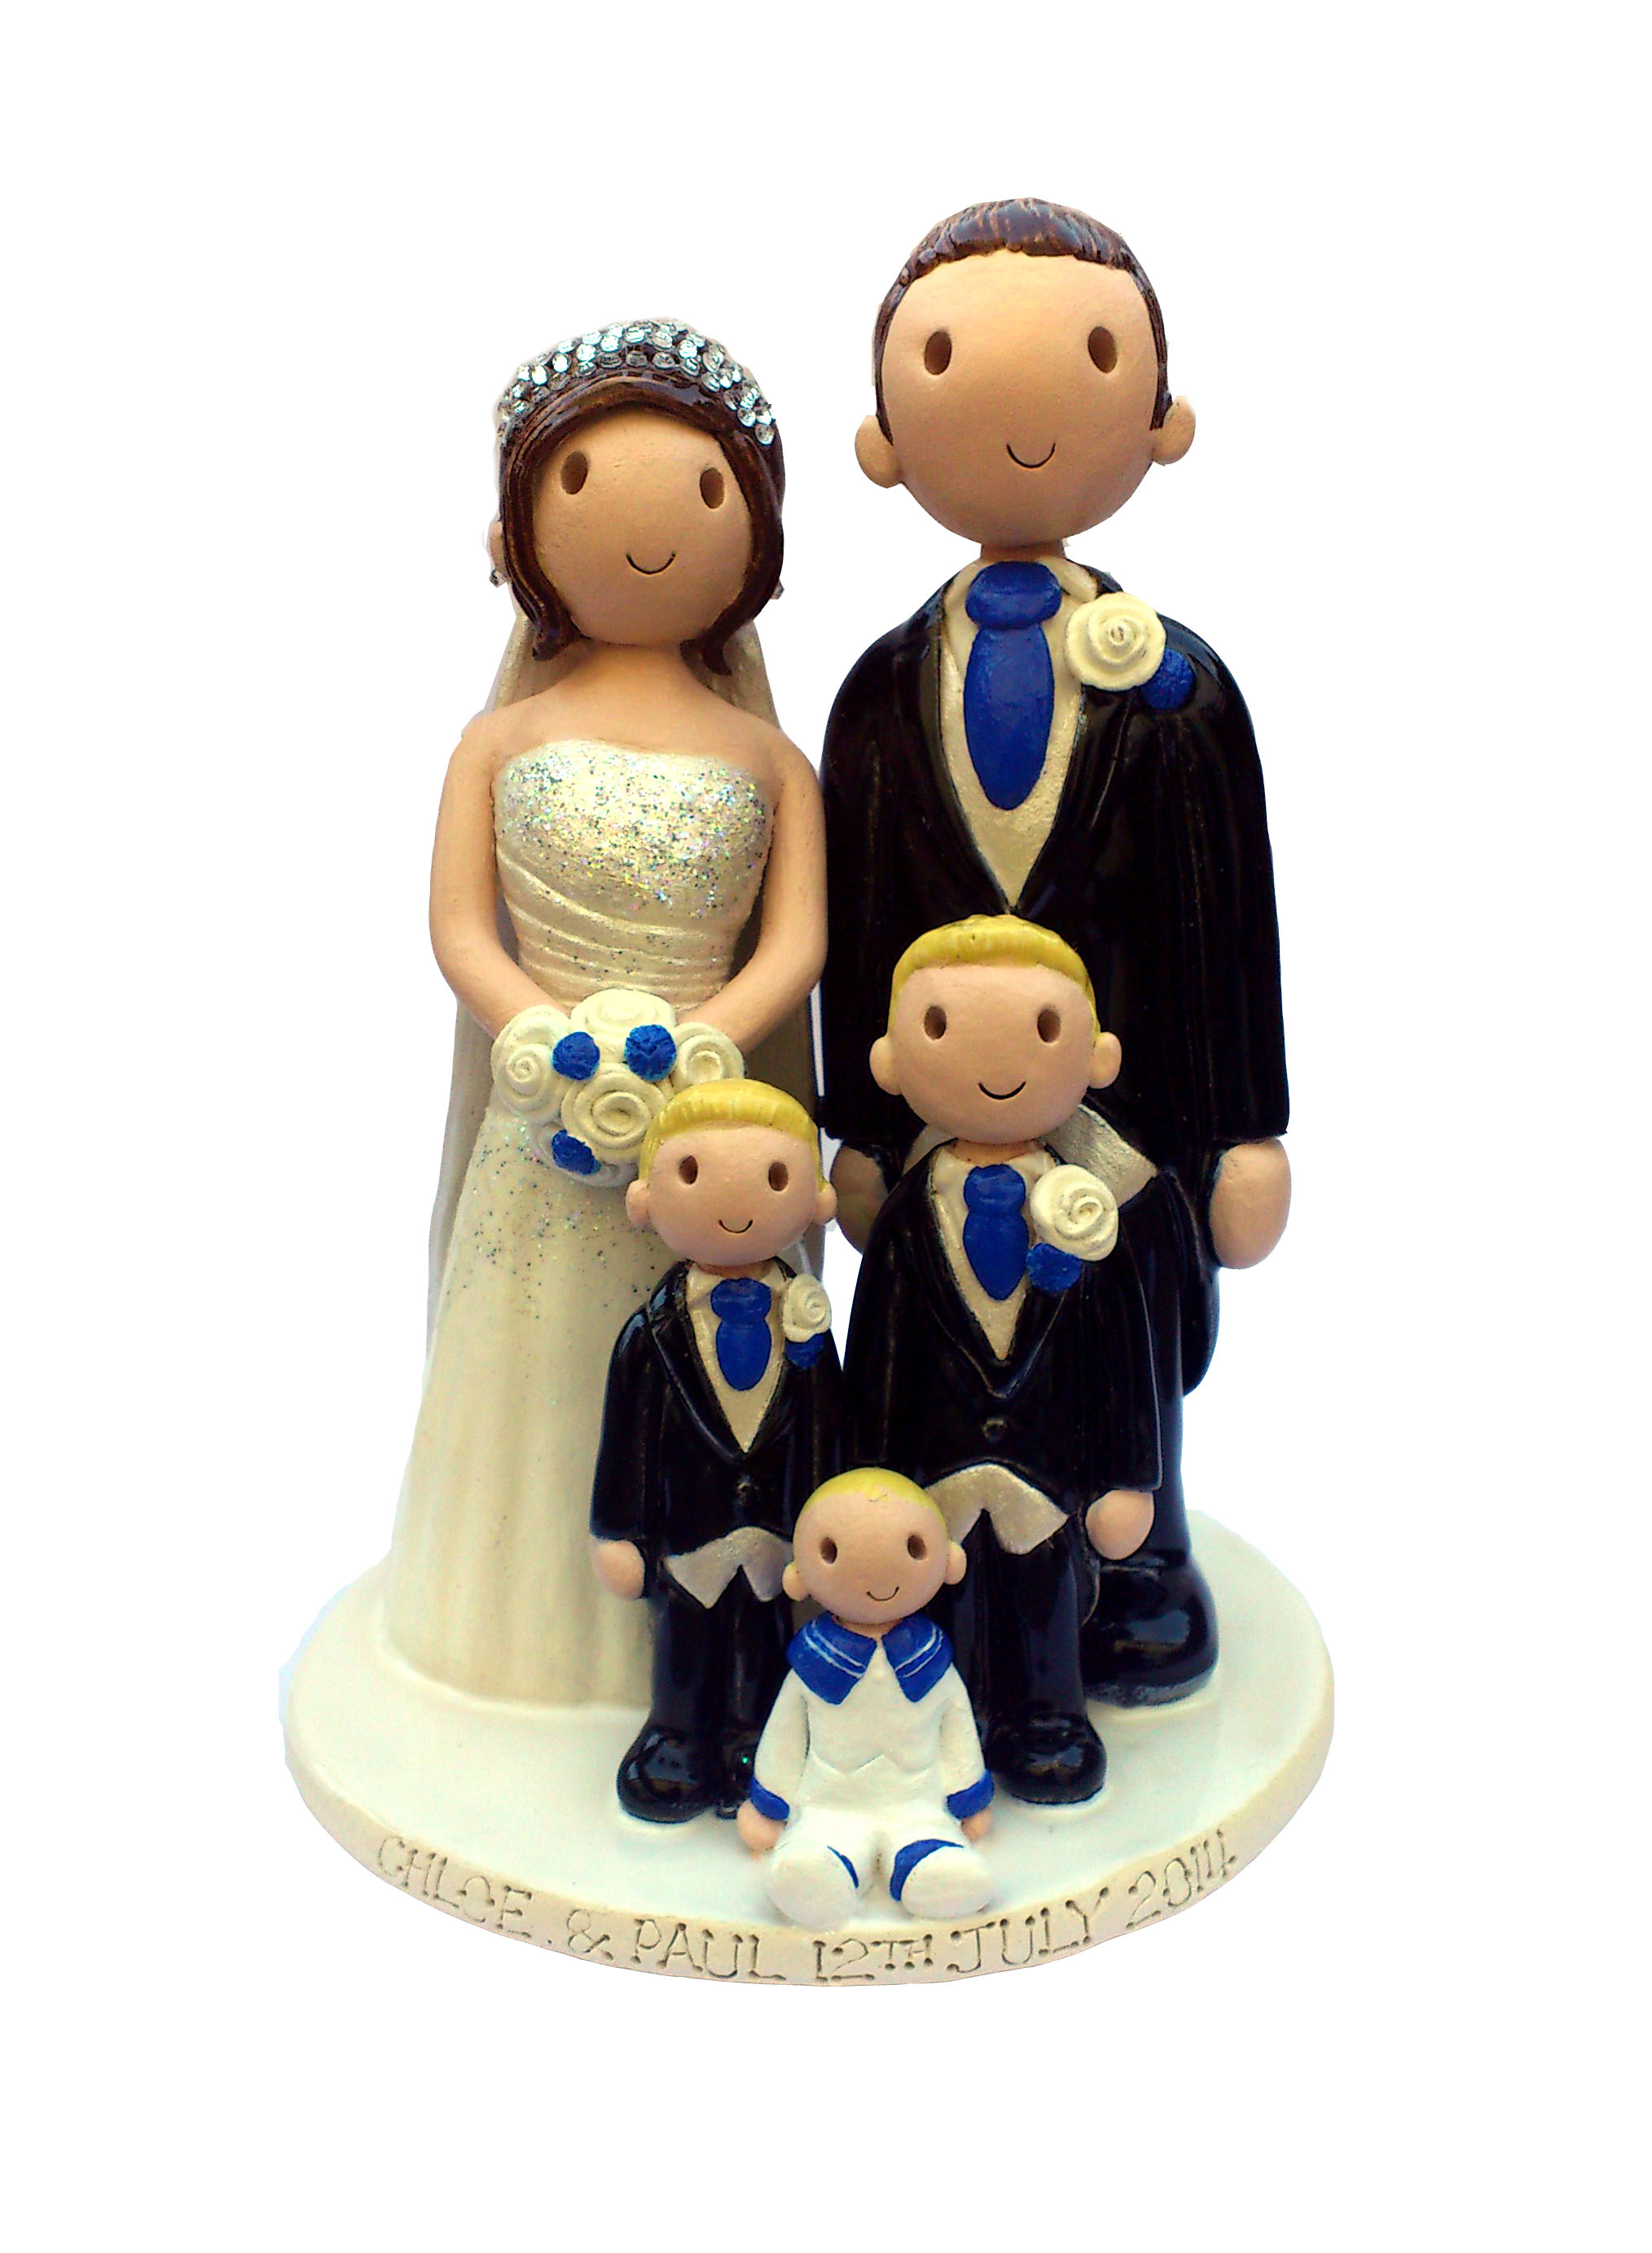 Personalised Cake Figurines Uk